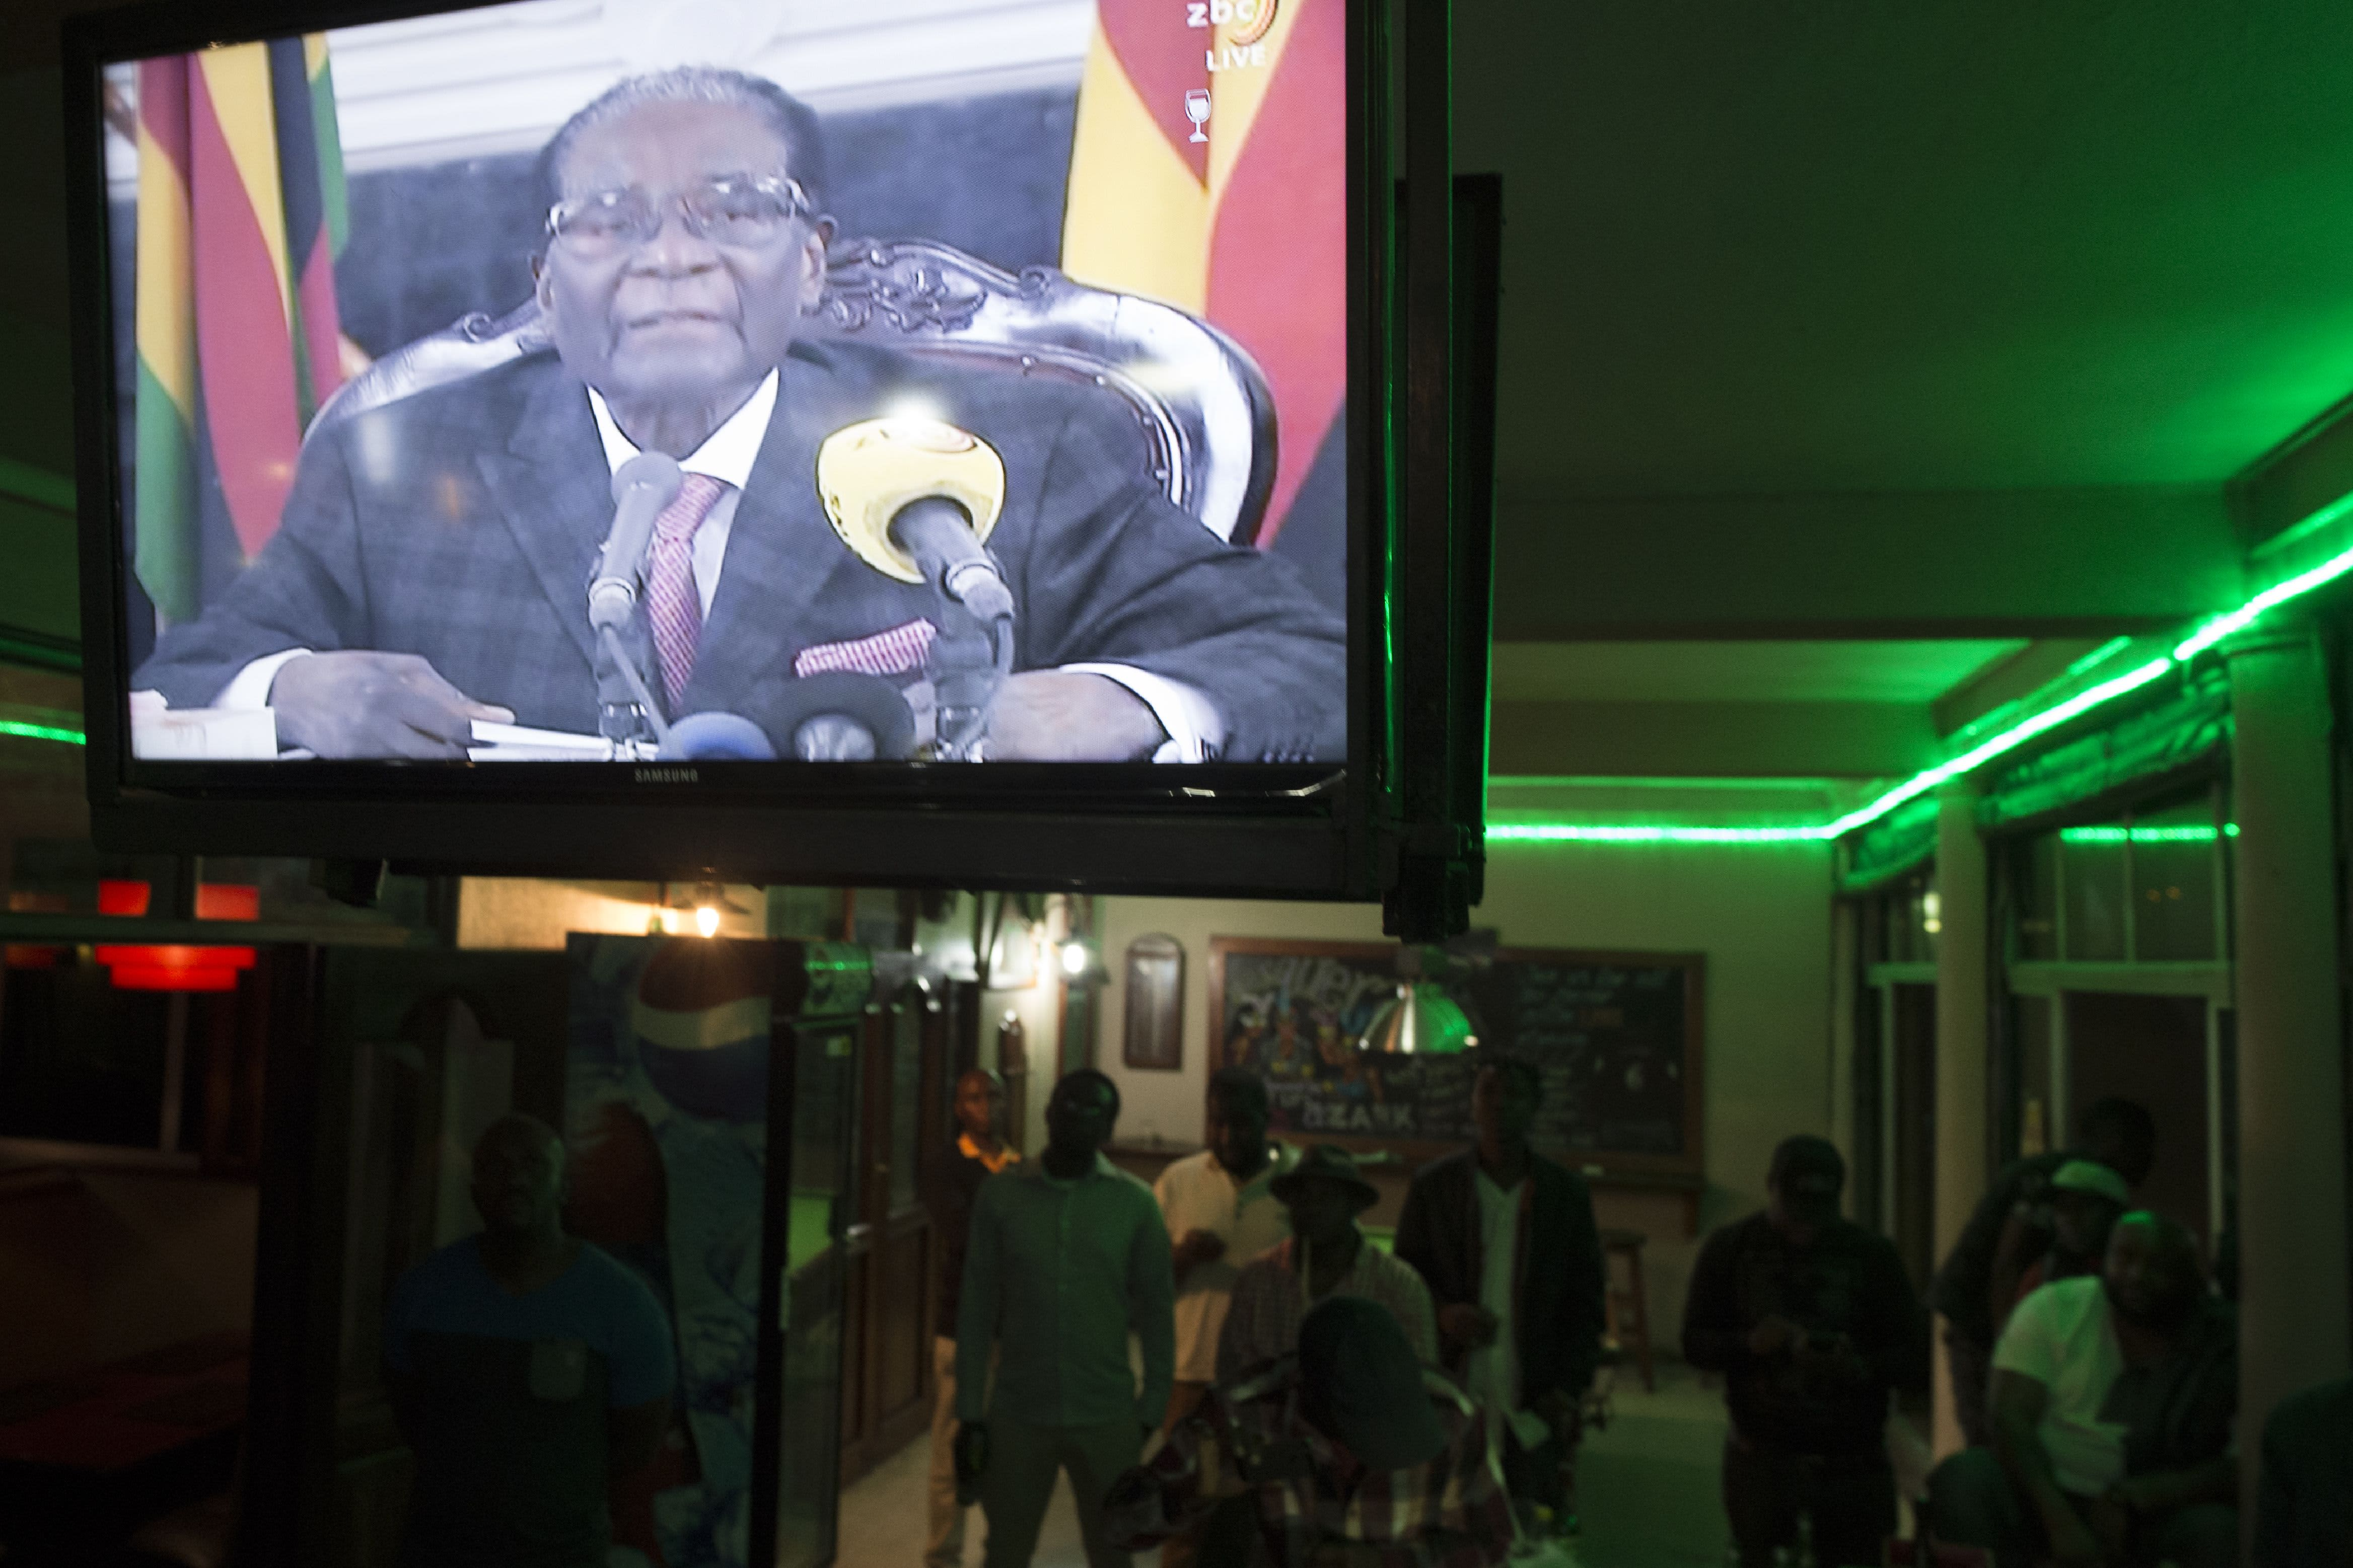 Zimbabweans watch a television address by then President Robert Mugabe in Harare on November 19, 2017.